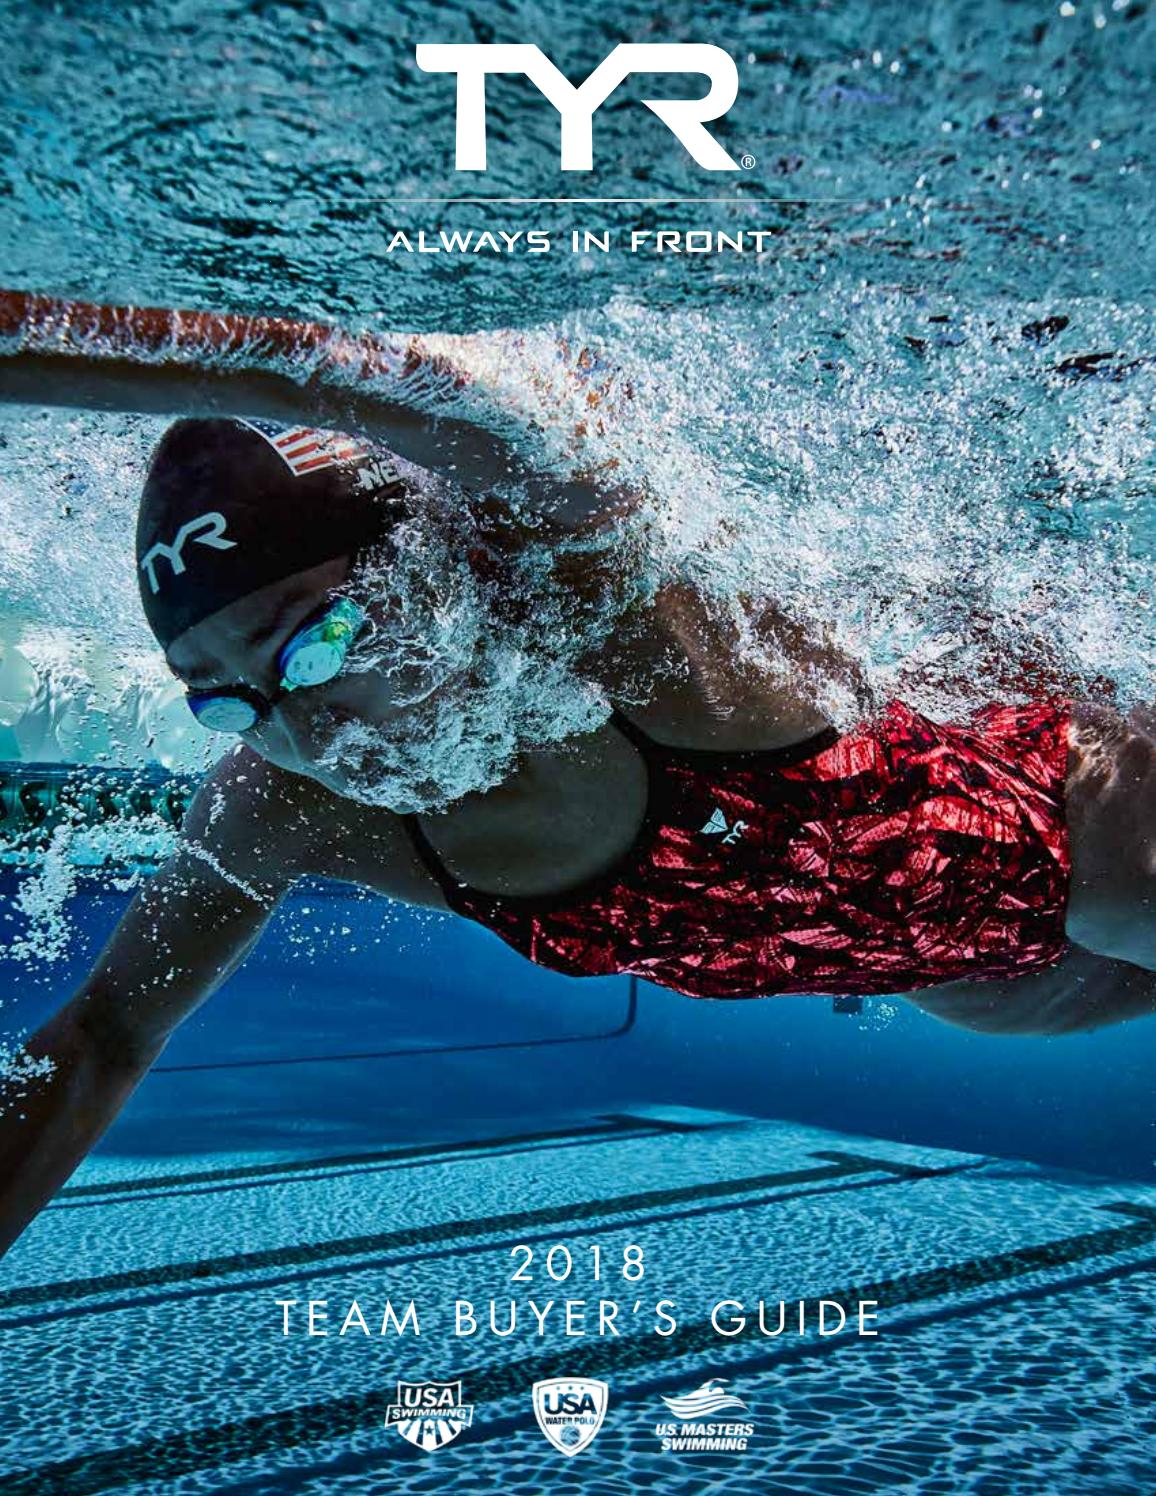 334a4ba349 TYR 2018 Team Buyer s Guide by TYR Sport - issuu